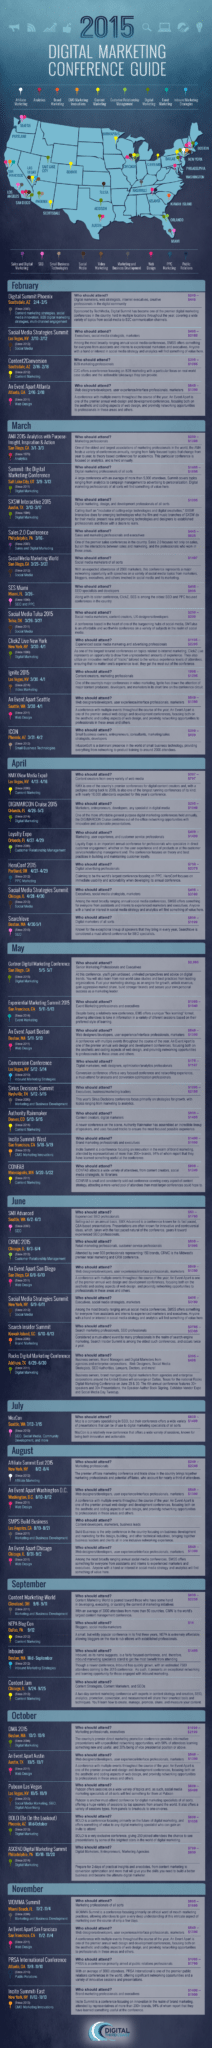 seo_conference_map-3-254